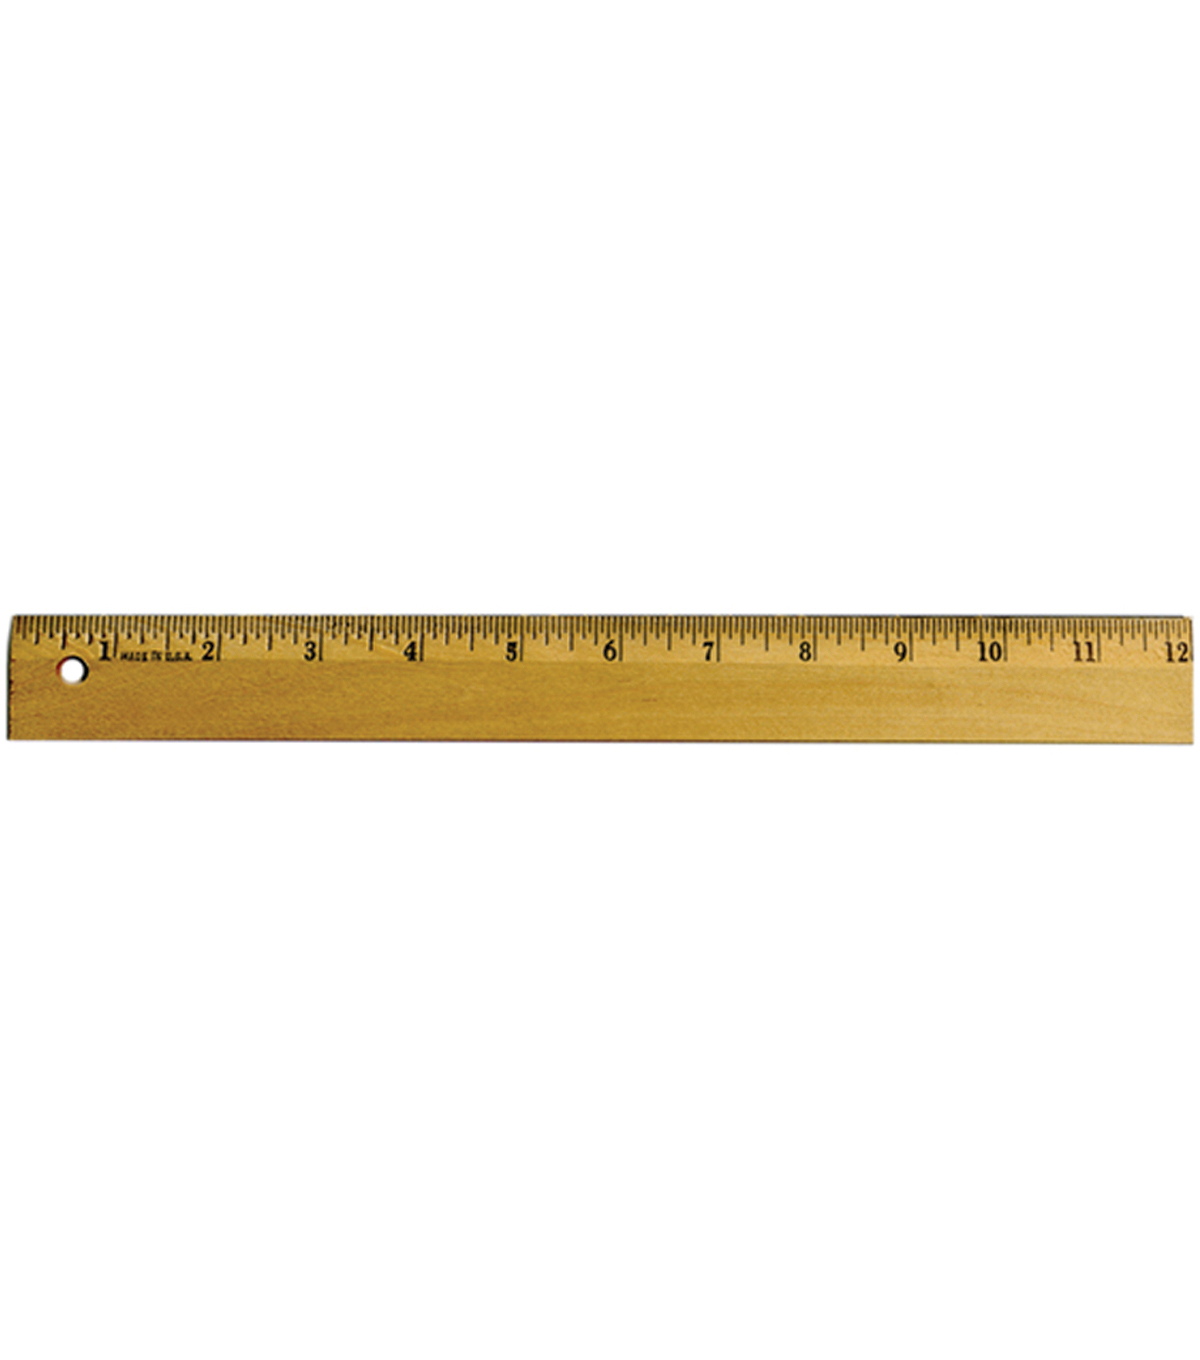 C-Thru Ruler Wood Metal Edge Ruler 12\u0022